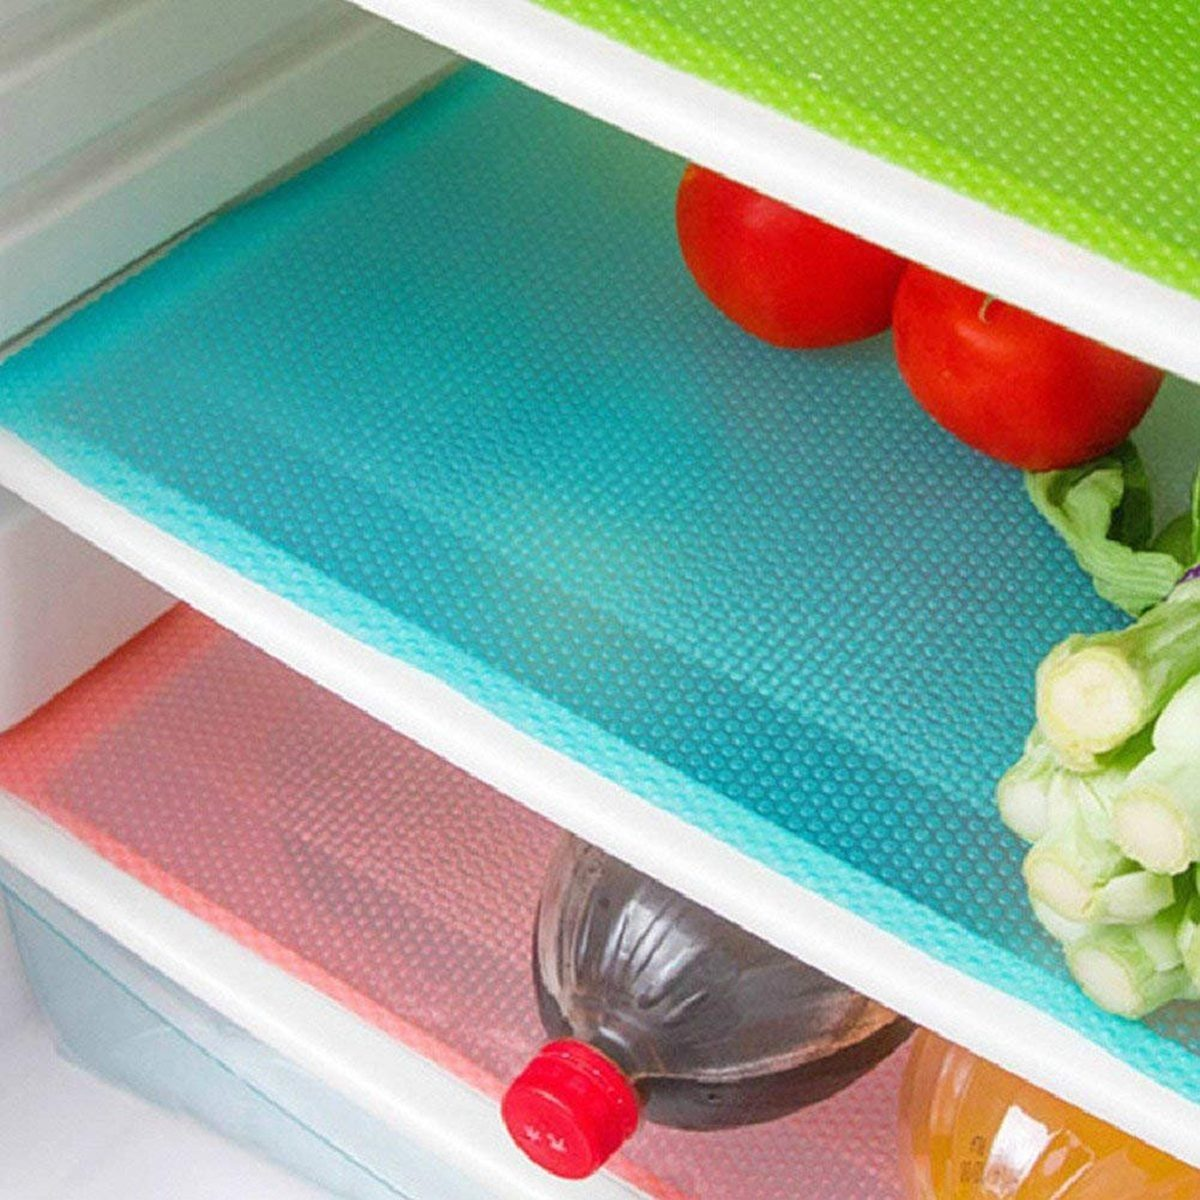 Aiosscd 7 PCS Shelf Mats Antifouling Refrigerator Liners Washable Can Be Cut Refrigerator Pads Fridge Mats Drawer Table Placemats(2 Green+2 Pink+3blue)